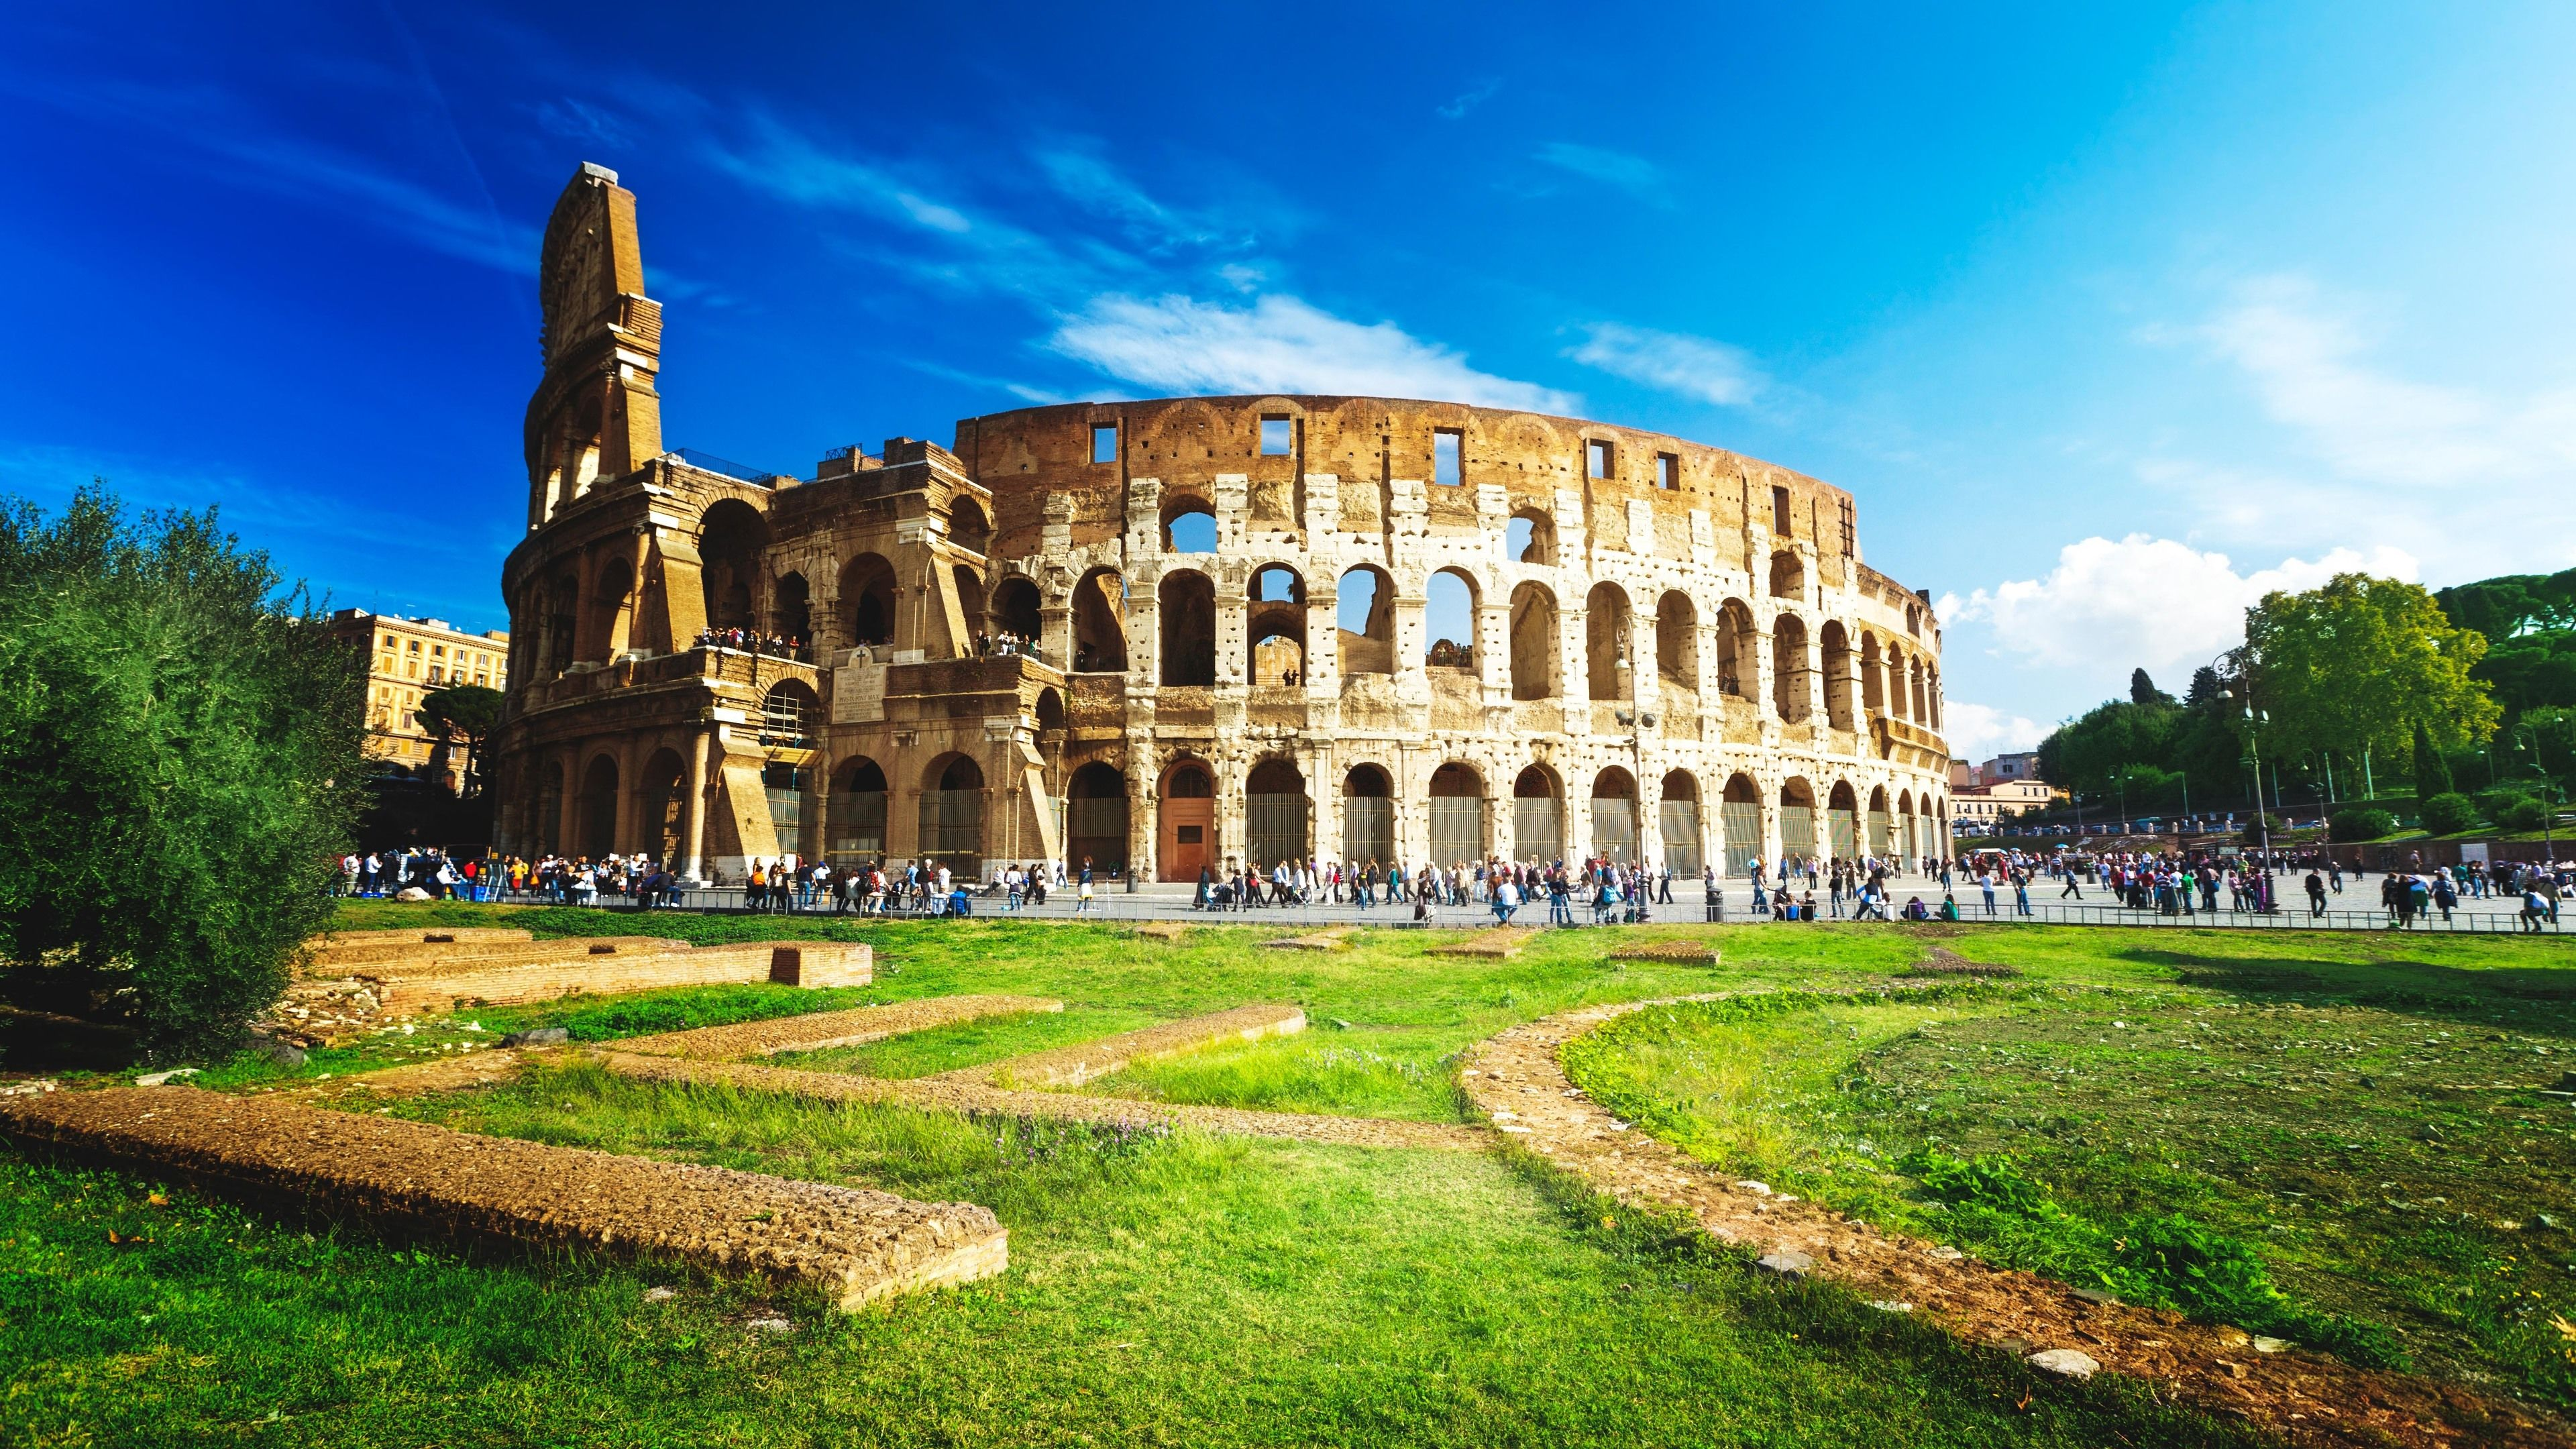 Vibrant landscape view of colosseum during the day.